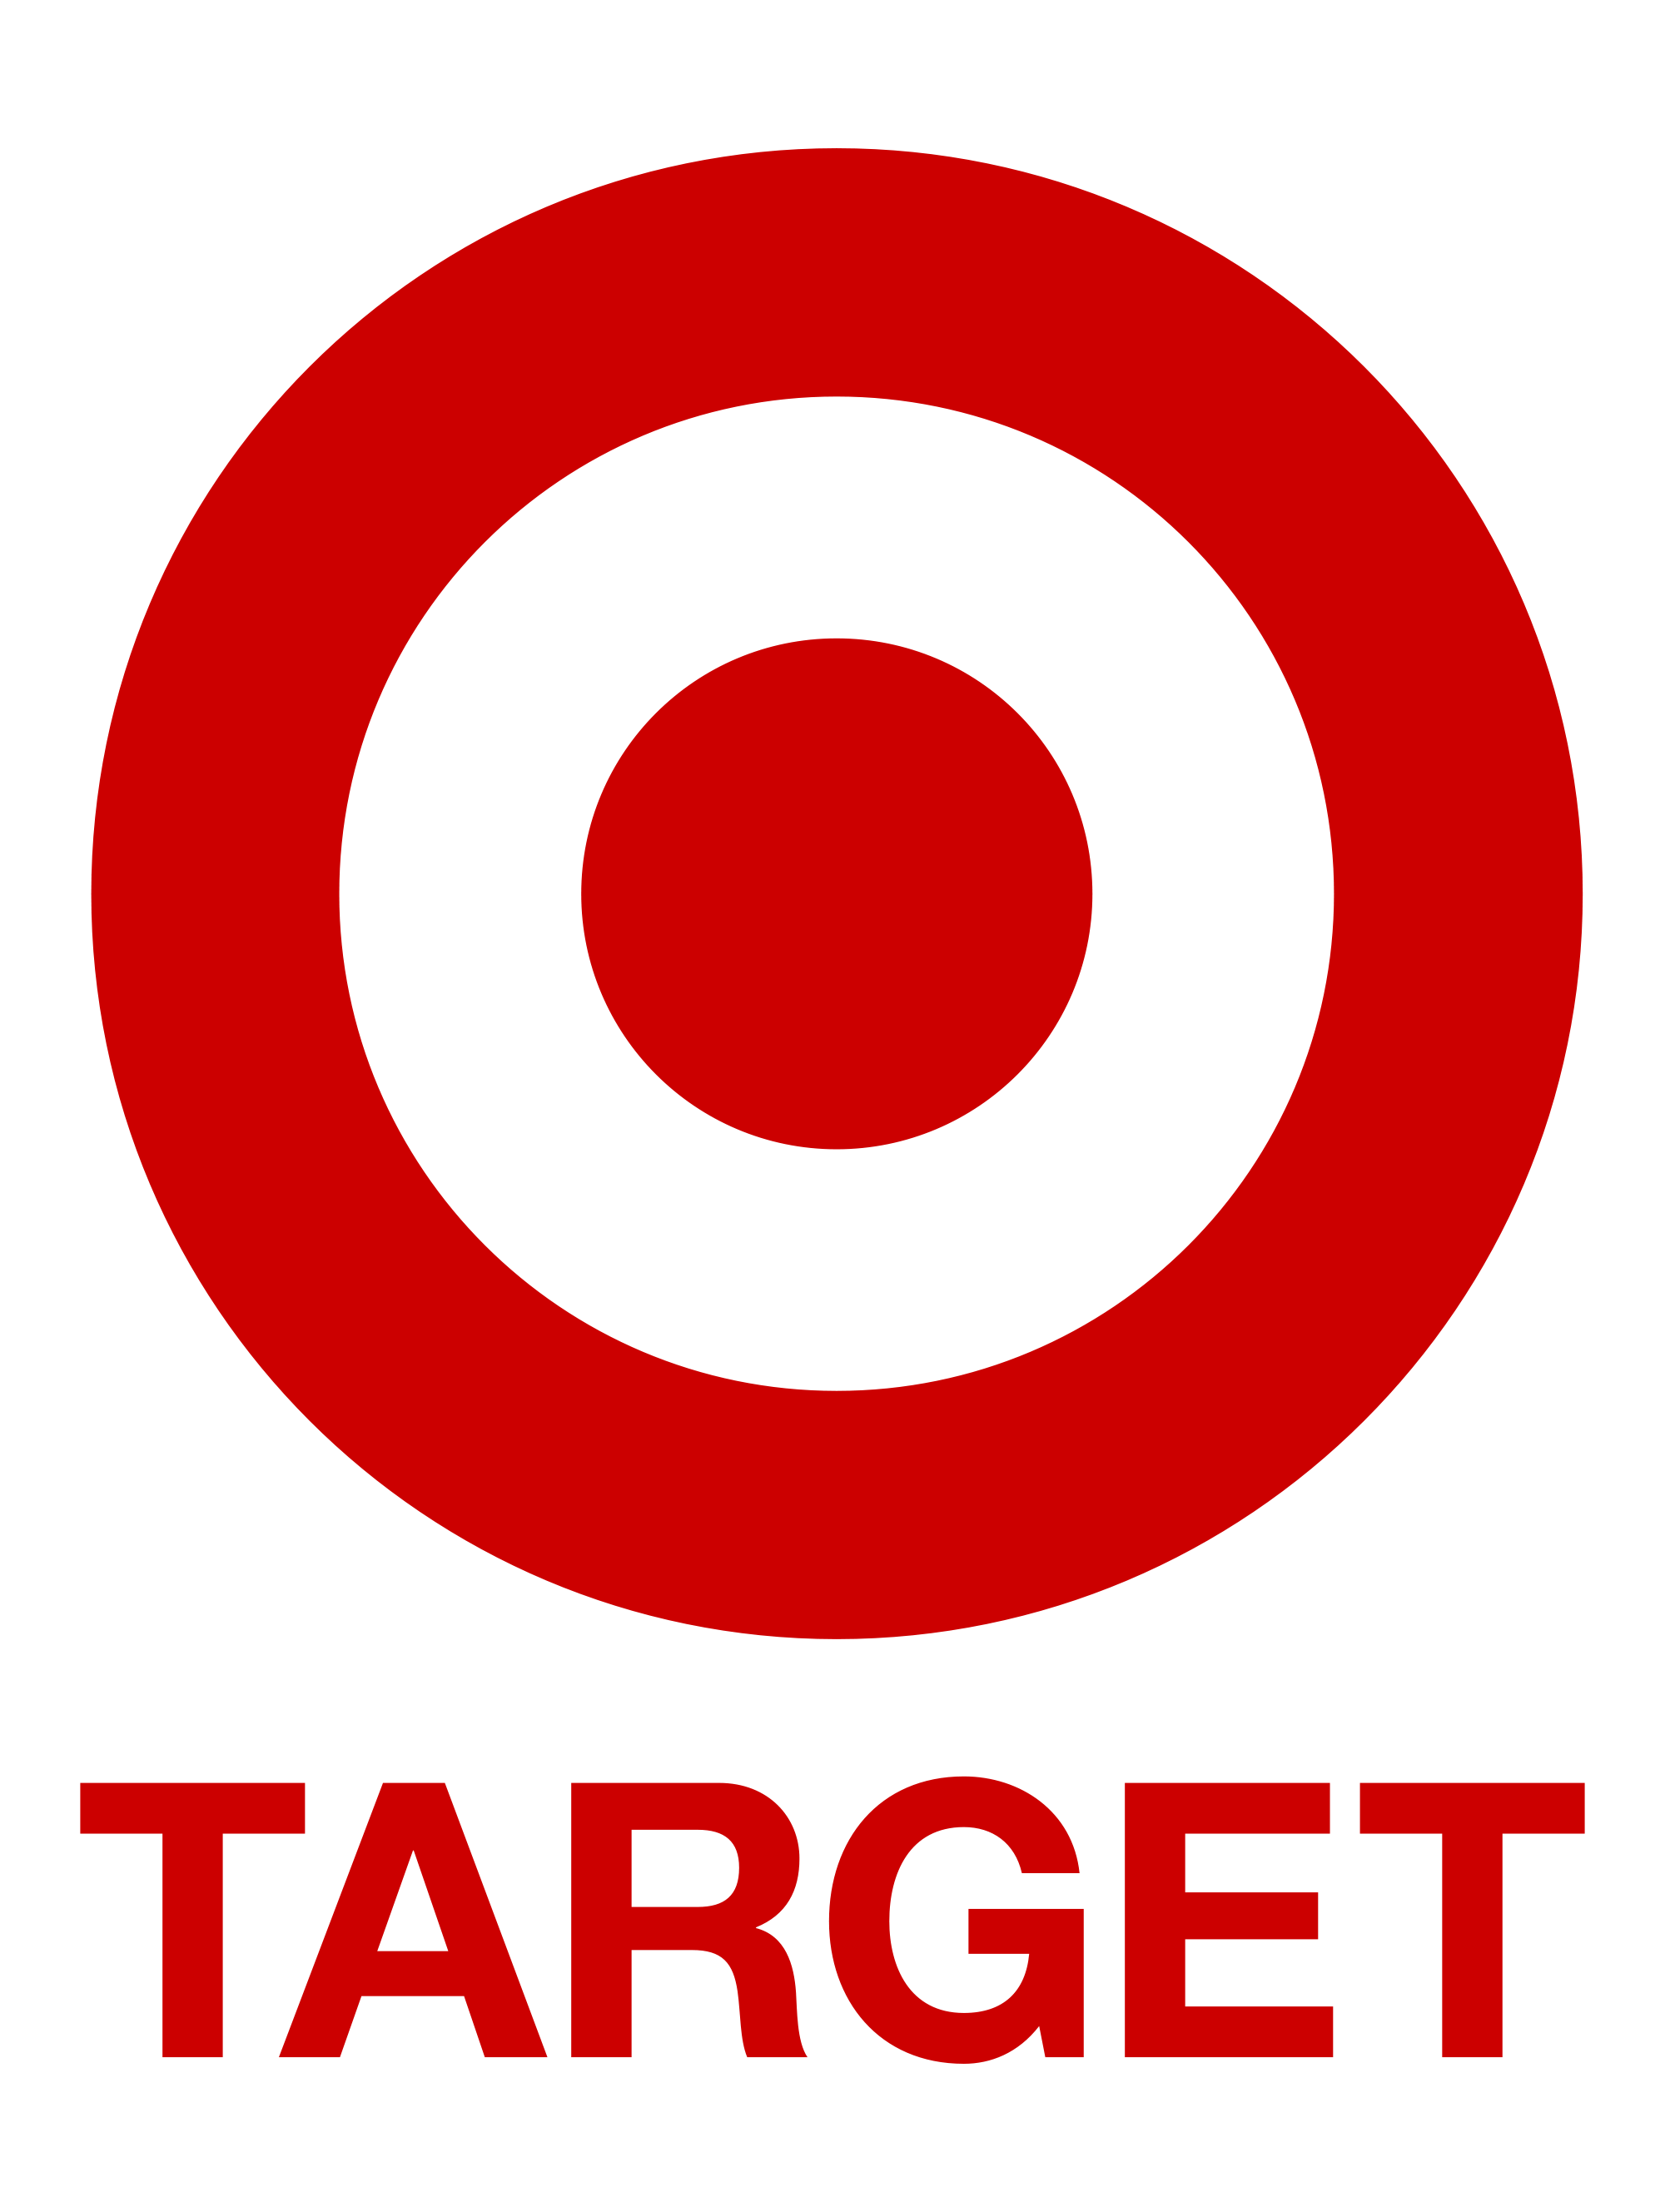 Target Online Coupon for Additional Savings  20% Off + Free S/H (Exclusions Apply)